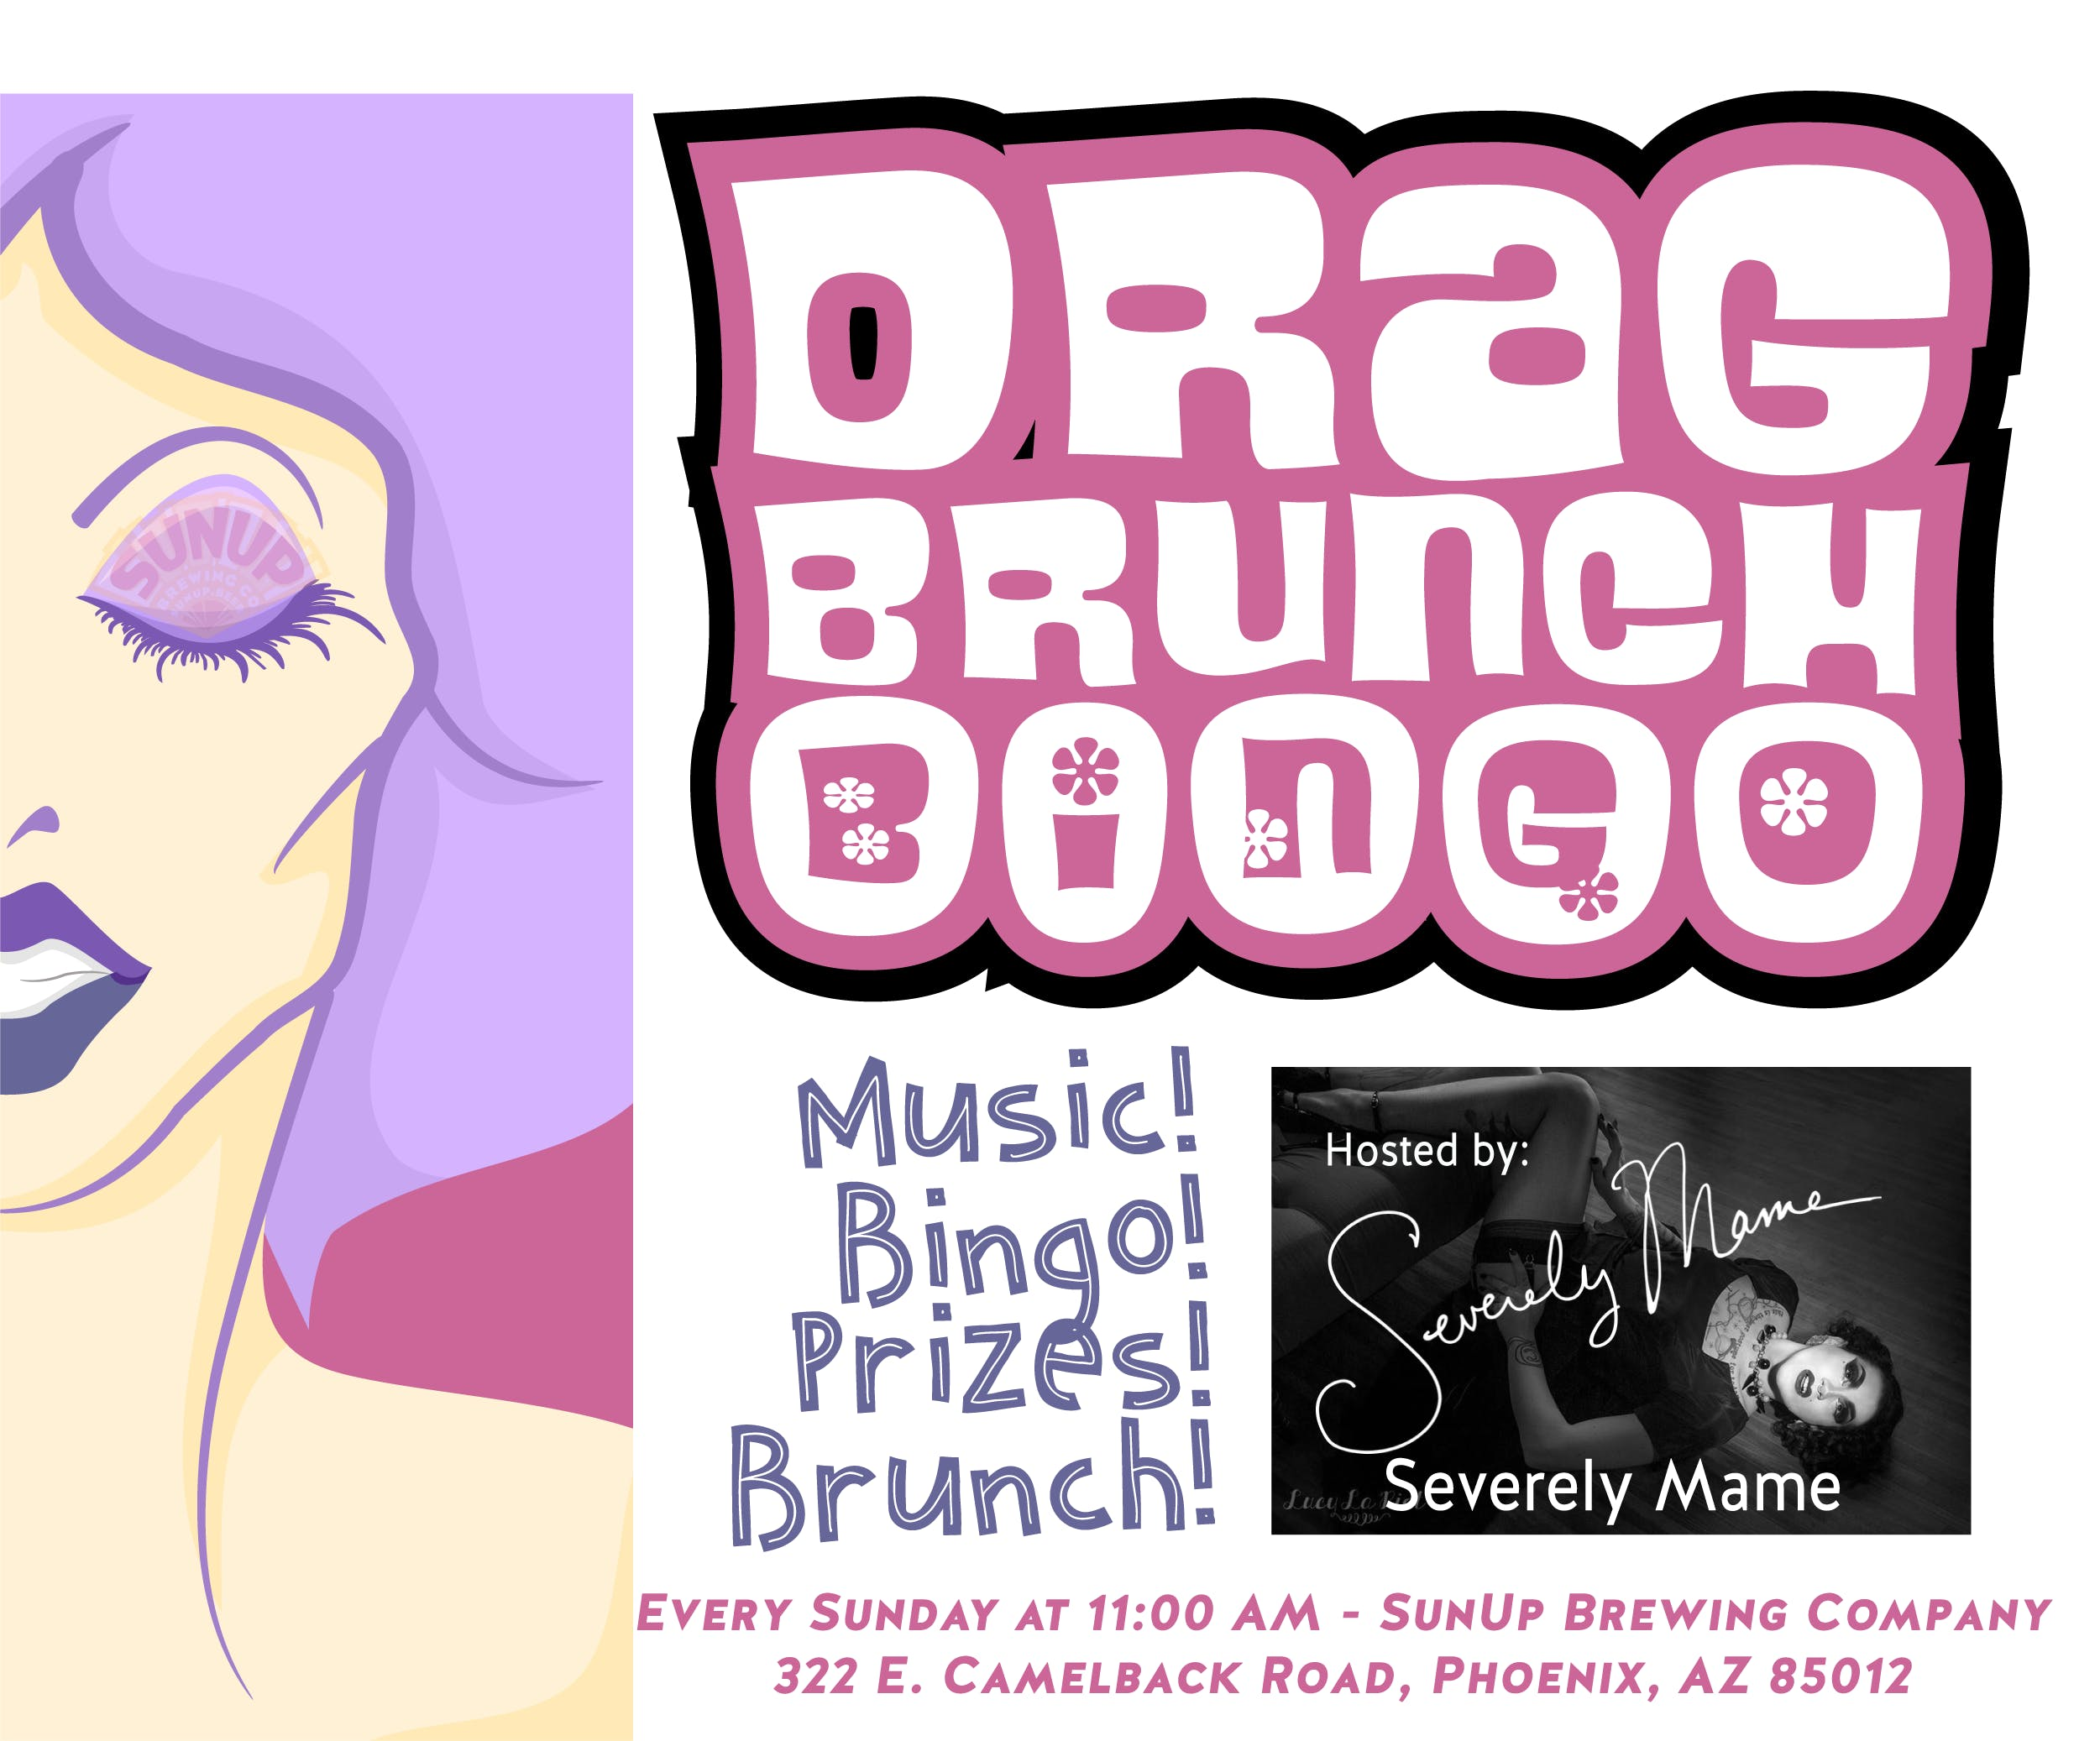 Drag Brunch Bingo!